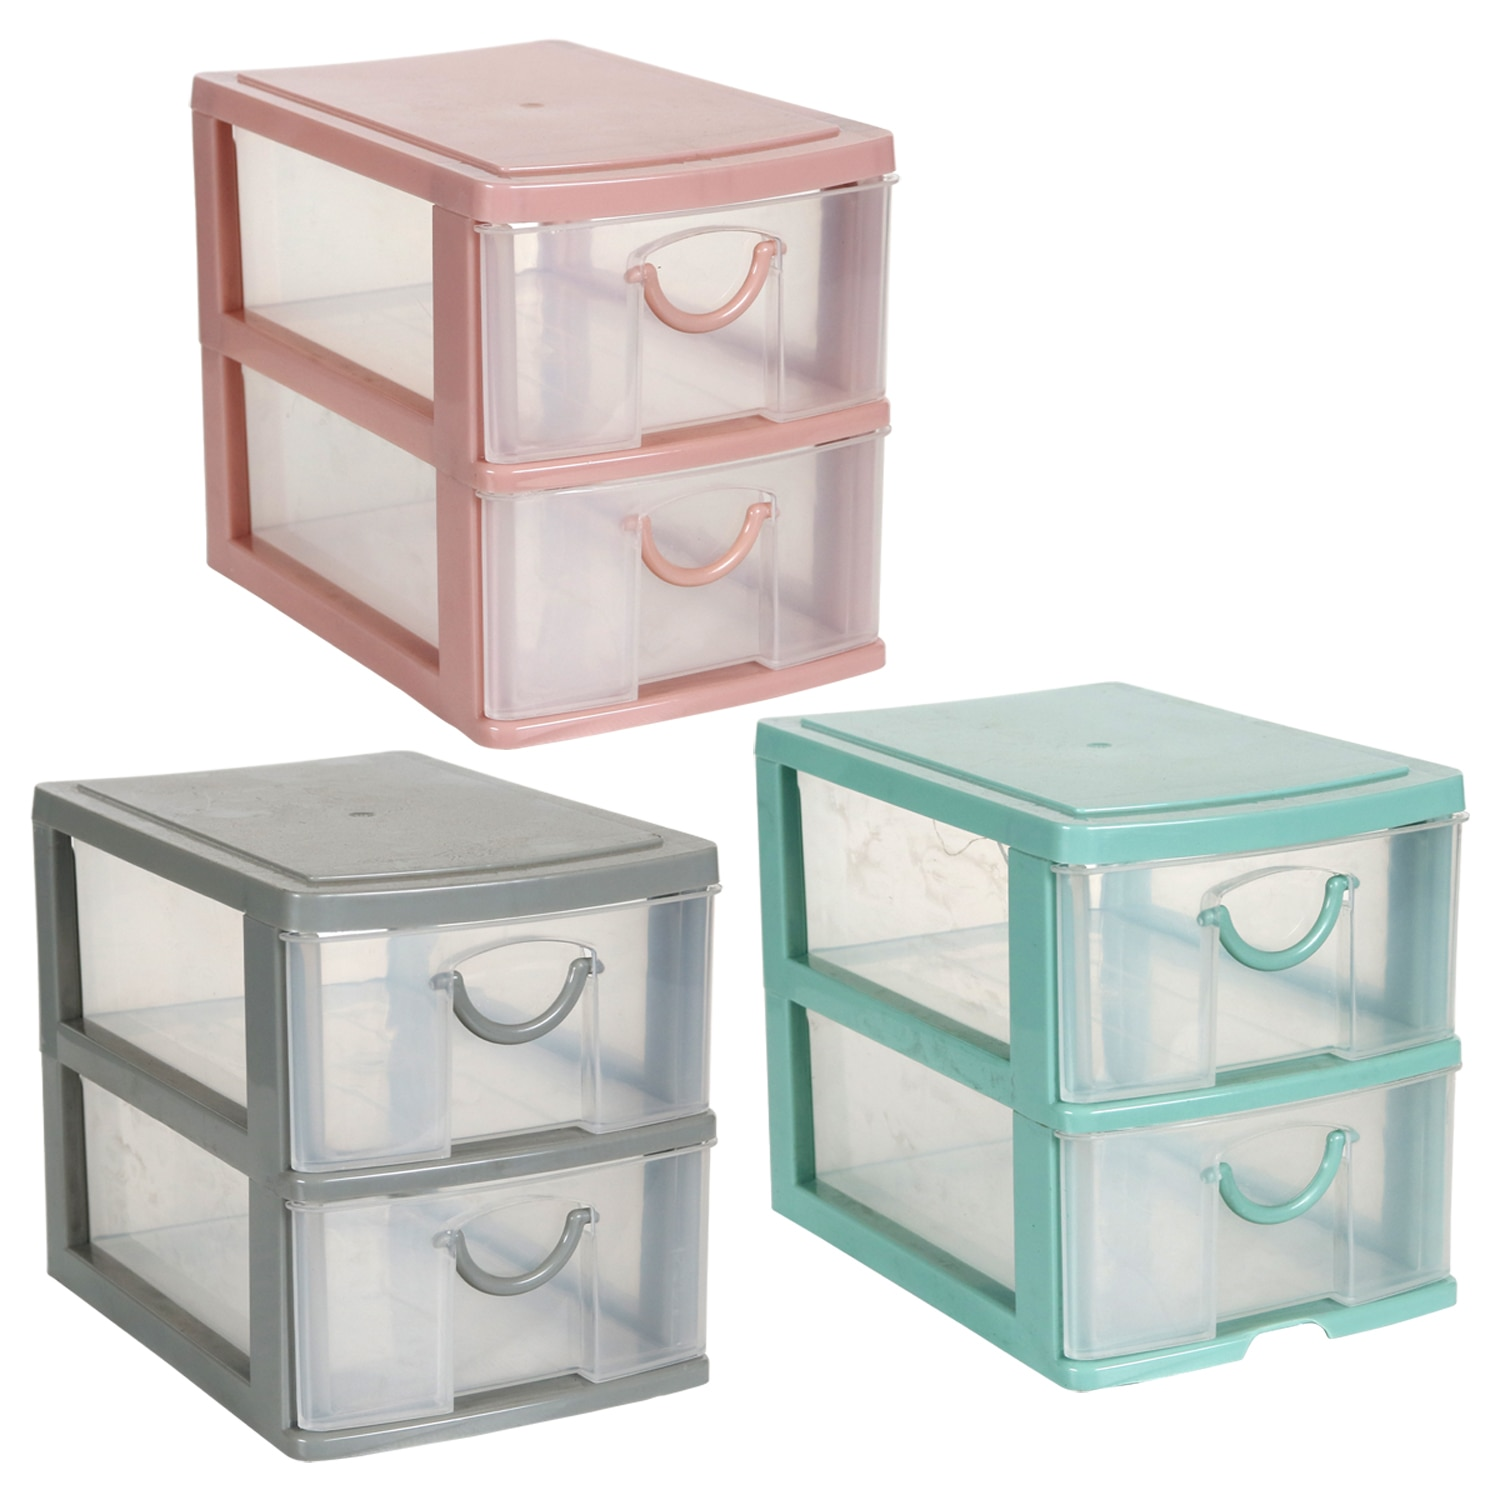 View 2-Tiered Mini Organizers with Drawers,